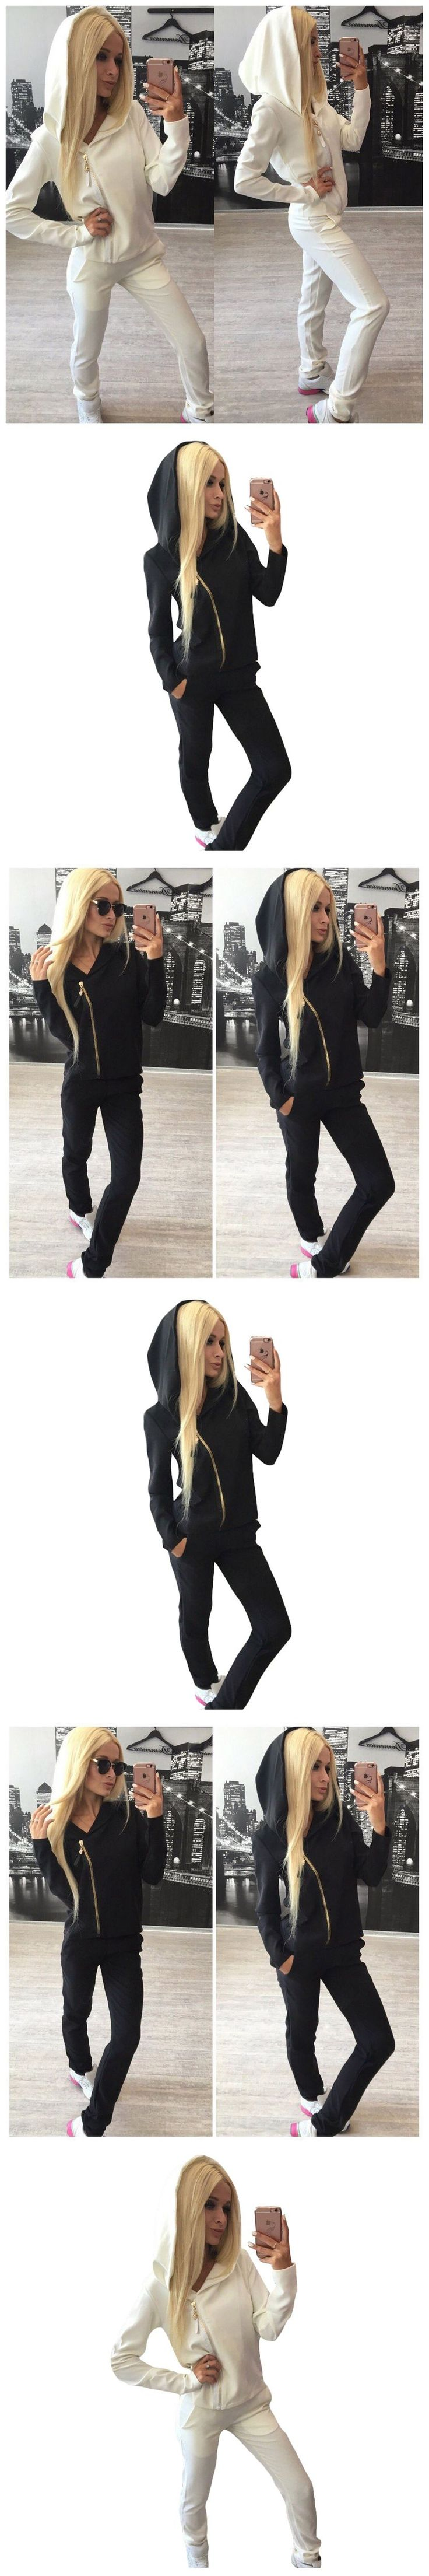 Women Casual Long Sleeves Inclined Zipper Hoodies+long Pants Sets Knitting Set Ladies Casual Tracksuits Sportswear